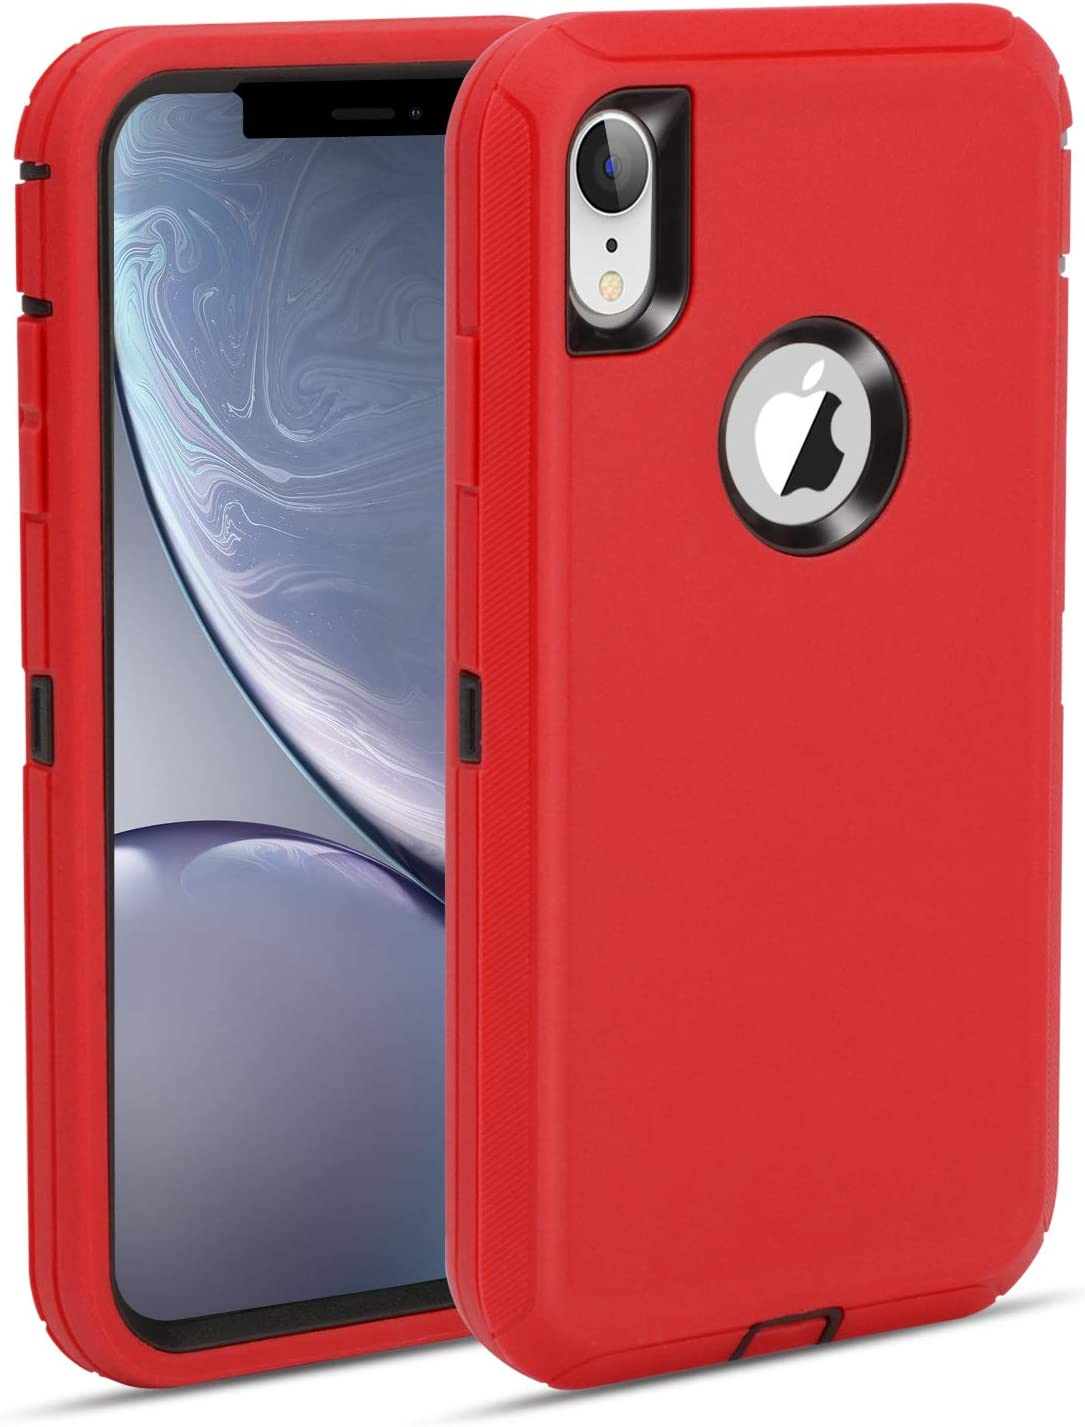 MAXCURY Defender iPhone XR Case, Heavy Duty Shockproof Full Body Protective Case Hard PC Bumper + Soft TPU Back Cover for iPhone XR Not Built in Screen Protector (Red/Black)